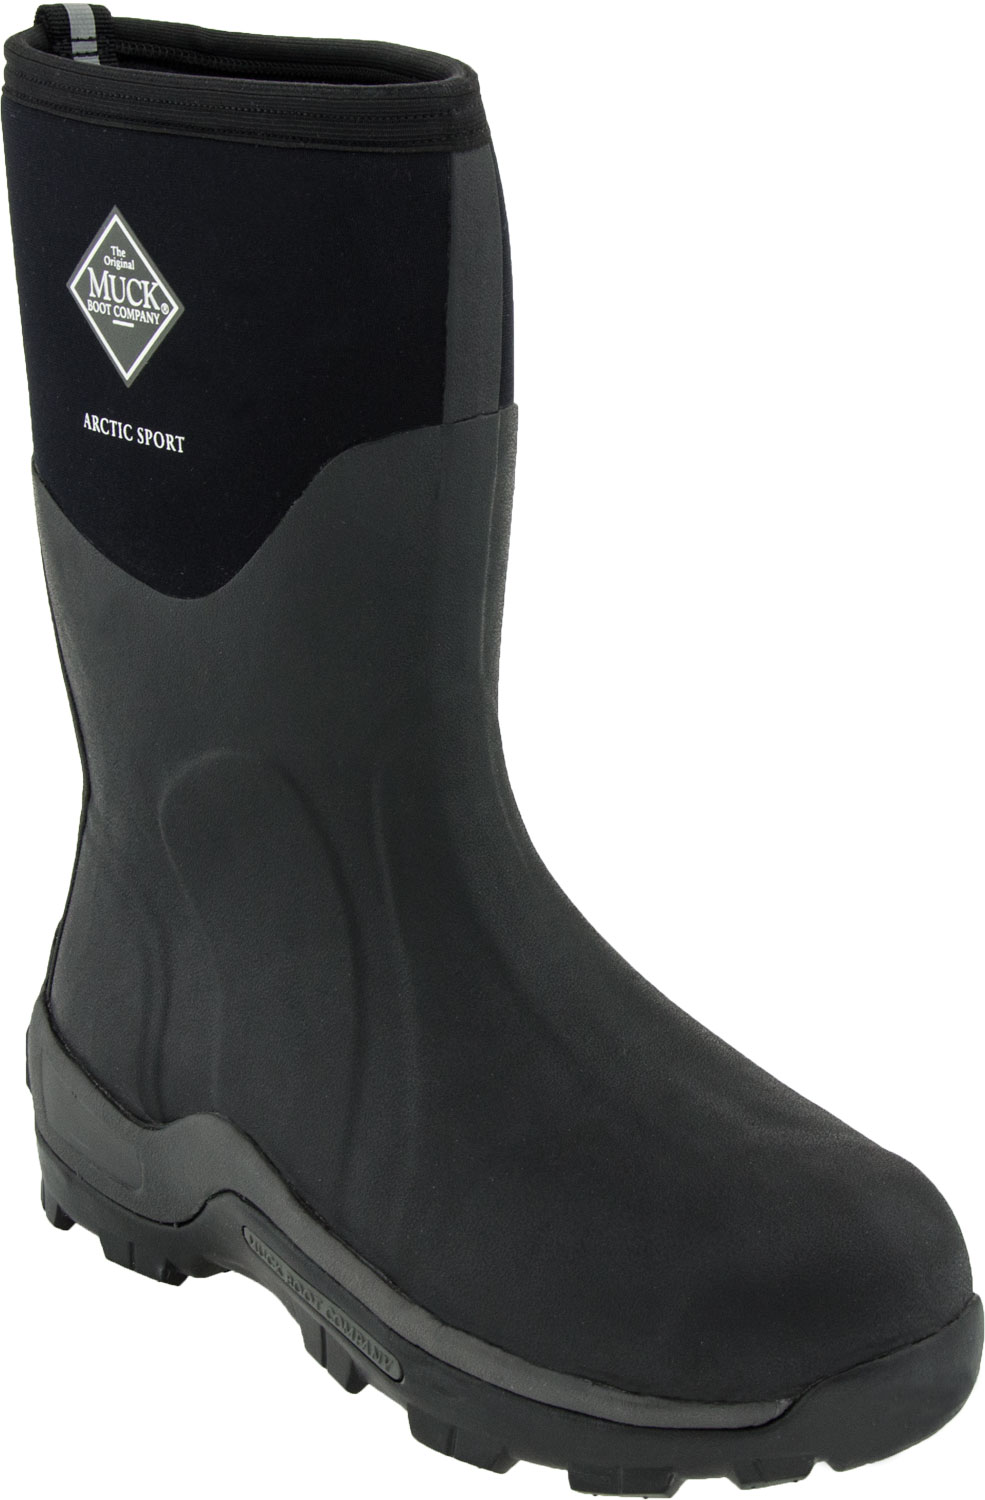 Muck Boots Arctic Sport Y437GFU8